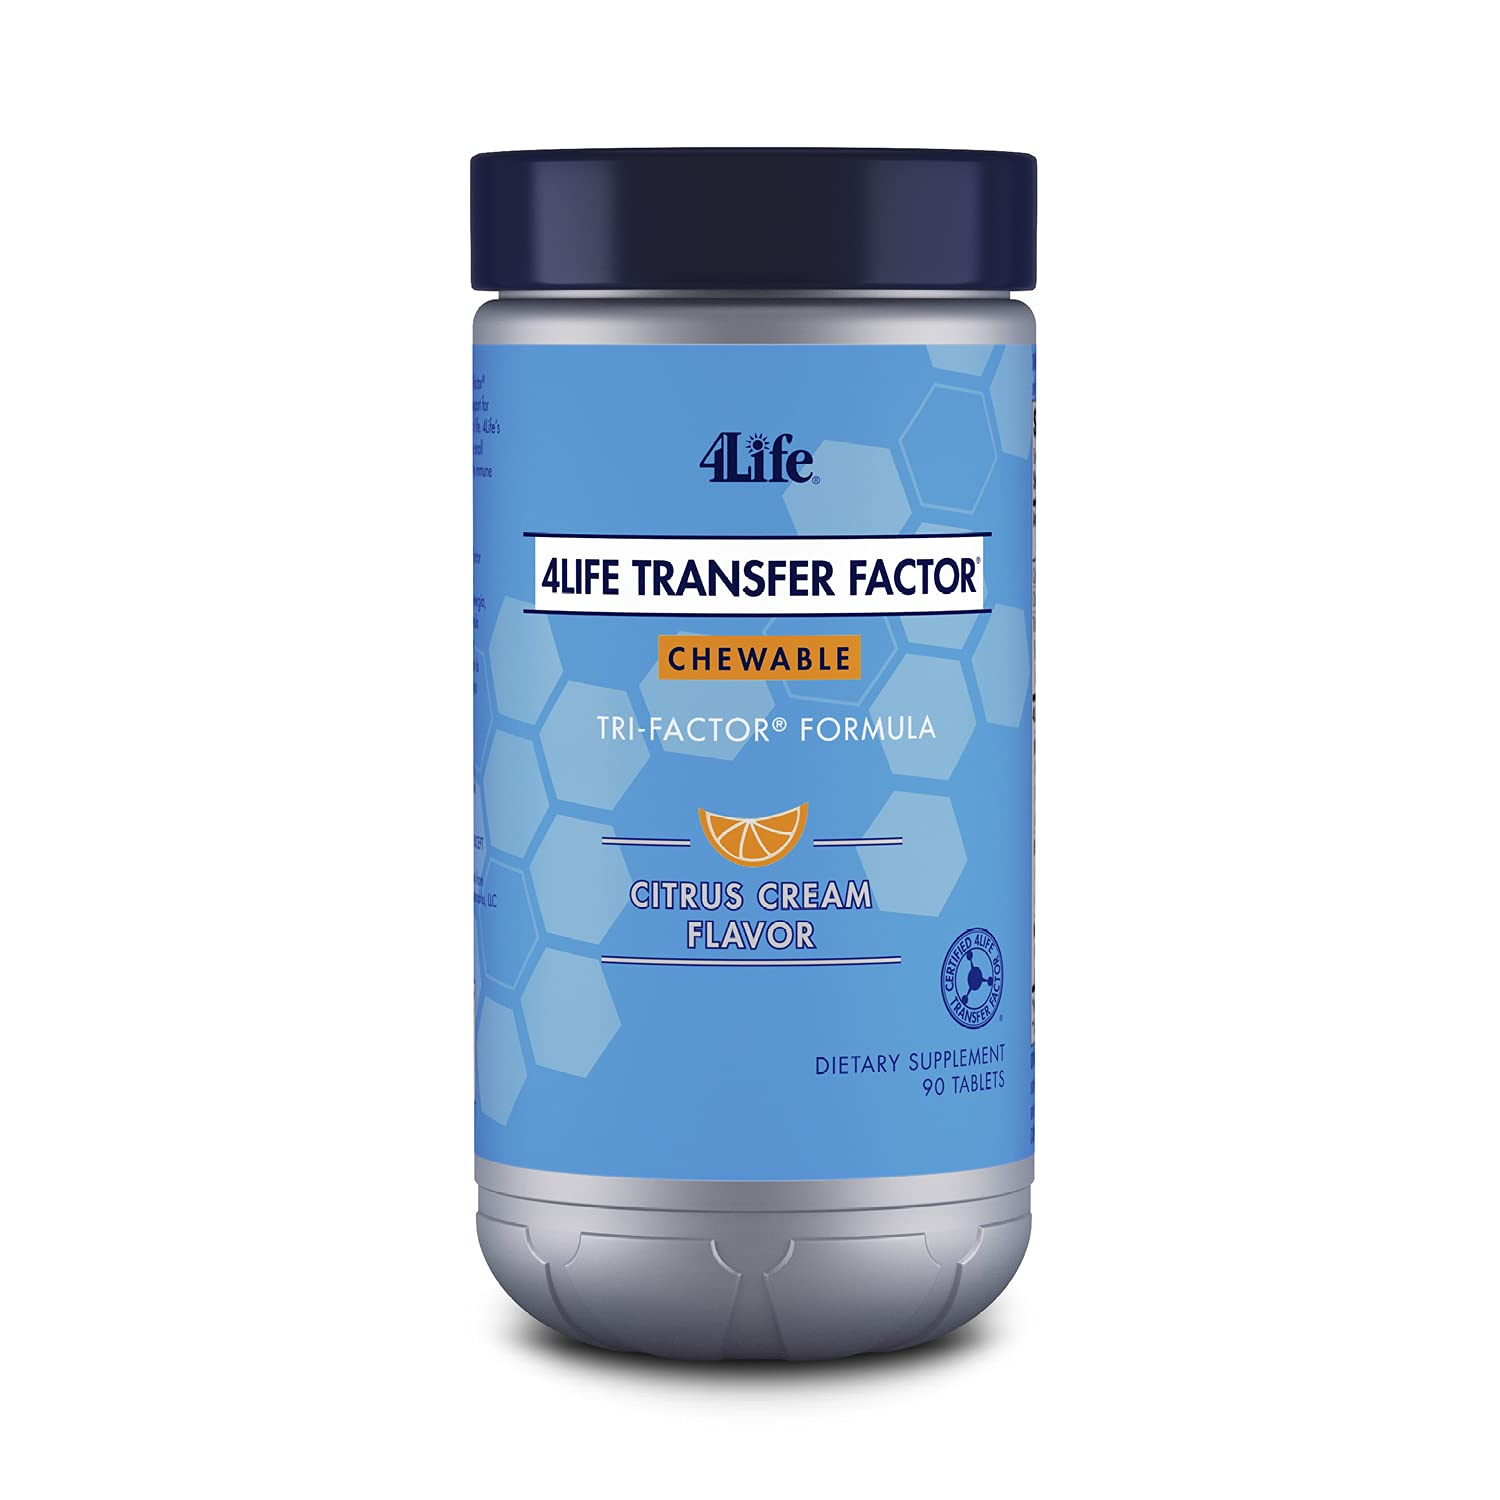 4Life Transfer Factor Chewables Tri-Factor Formula - Immune Support with Extracts of Cow Colostrum and Chicken Egg Yolk - Citrus Cream Flavor - 90 Chewable Tablets